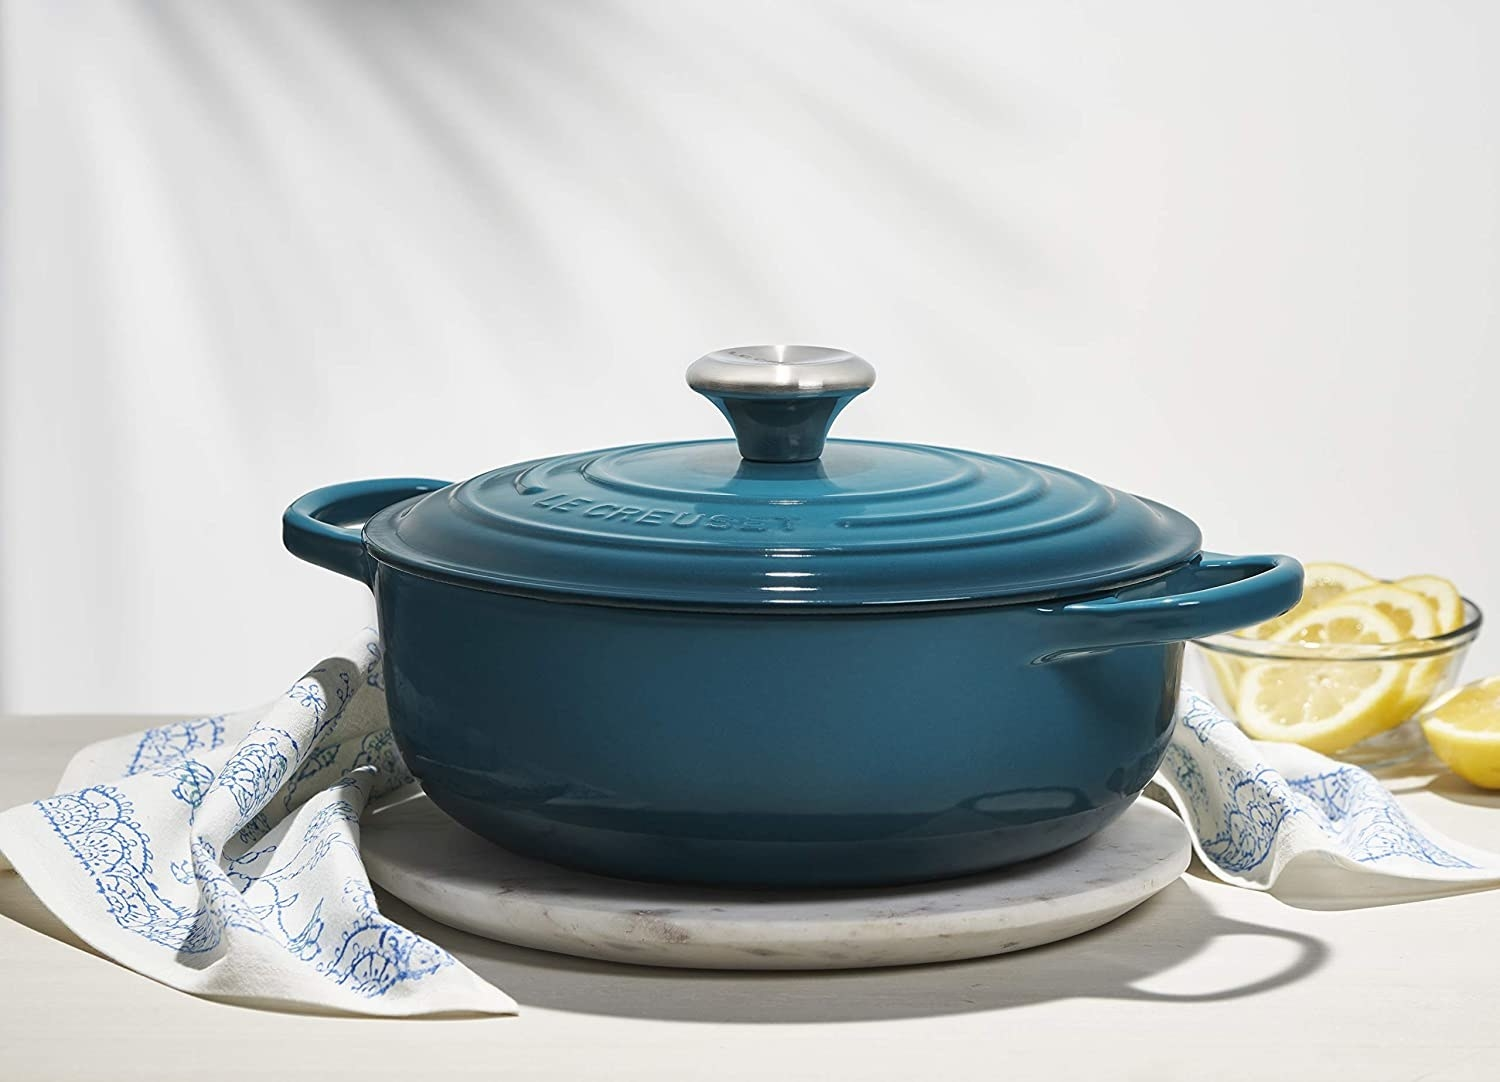 The blue Dutch oven